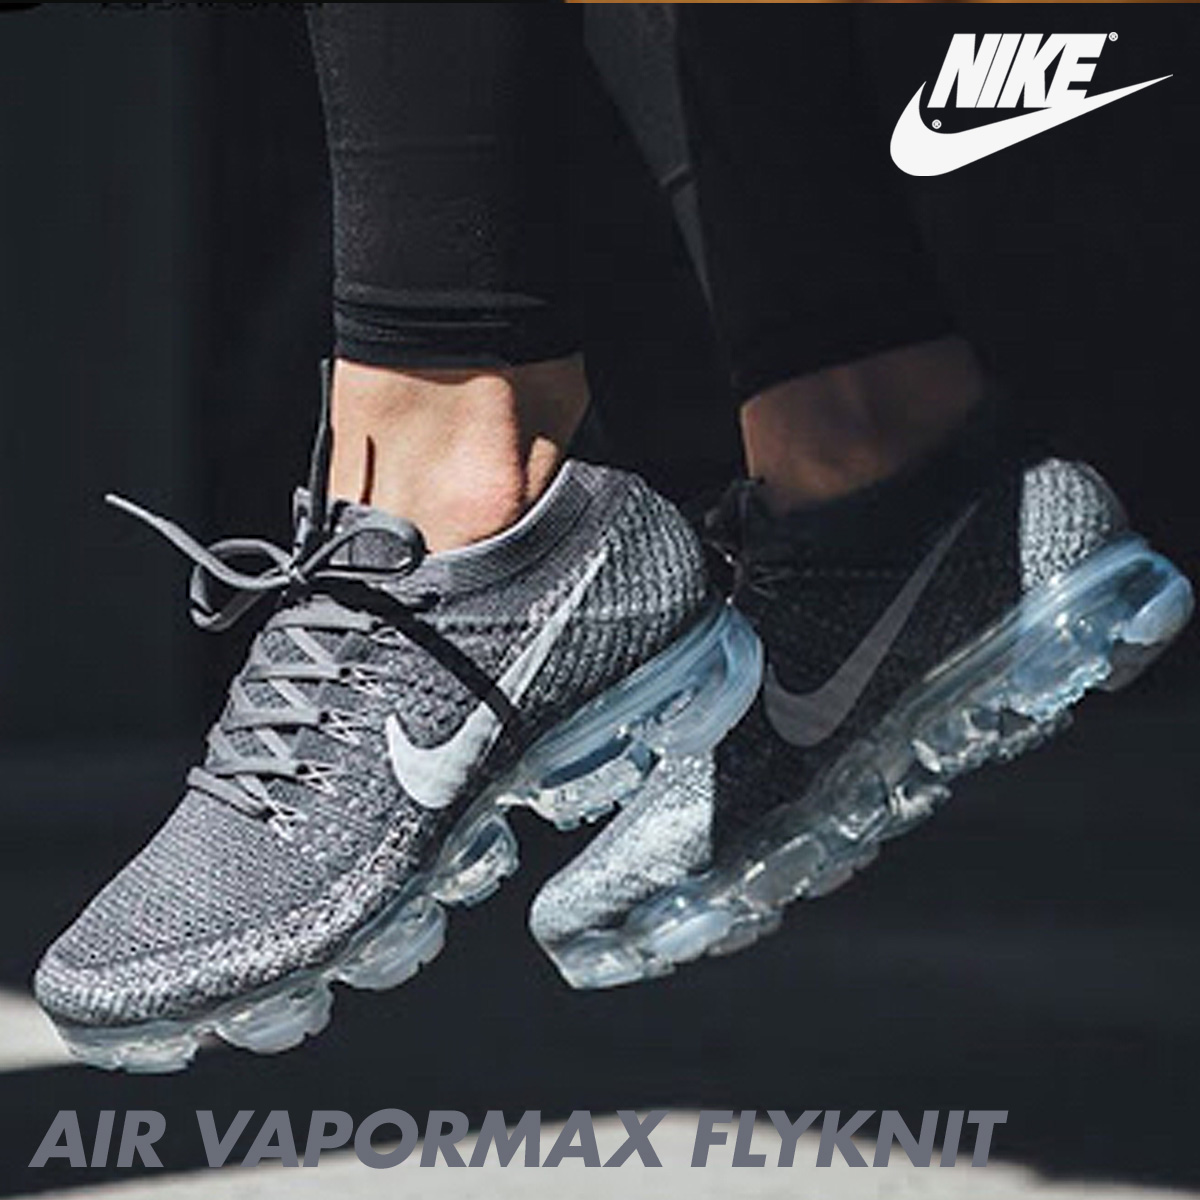 f373a316d39 ... nike nike air vapor max fried food knit sneakers air vapormax flyknit  men 849558 002